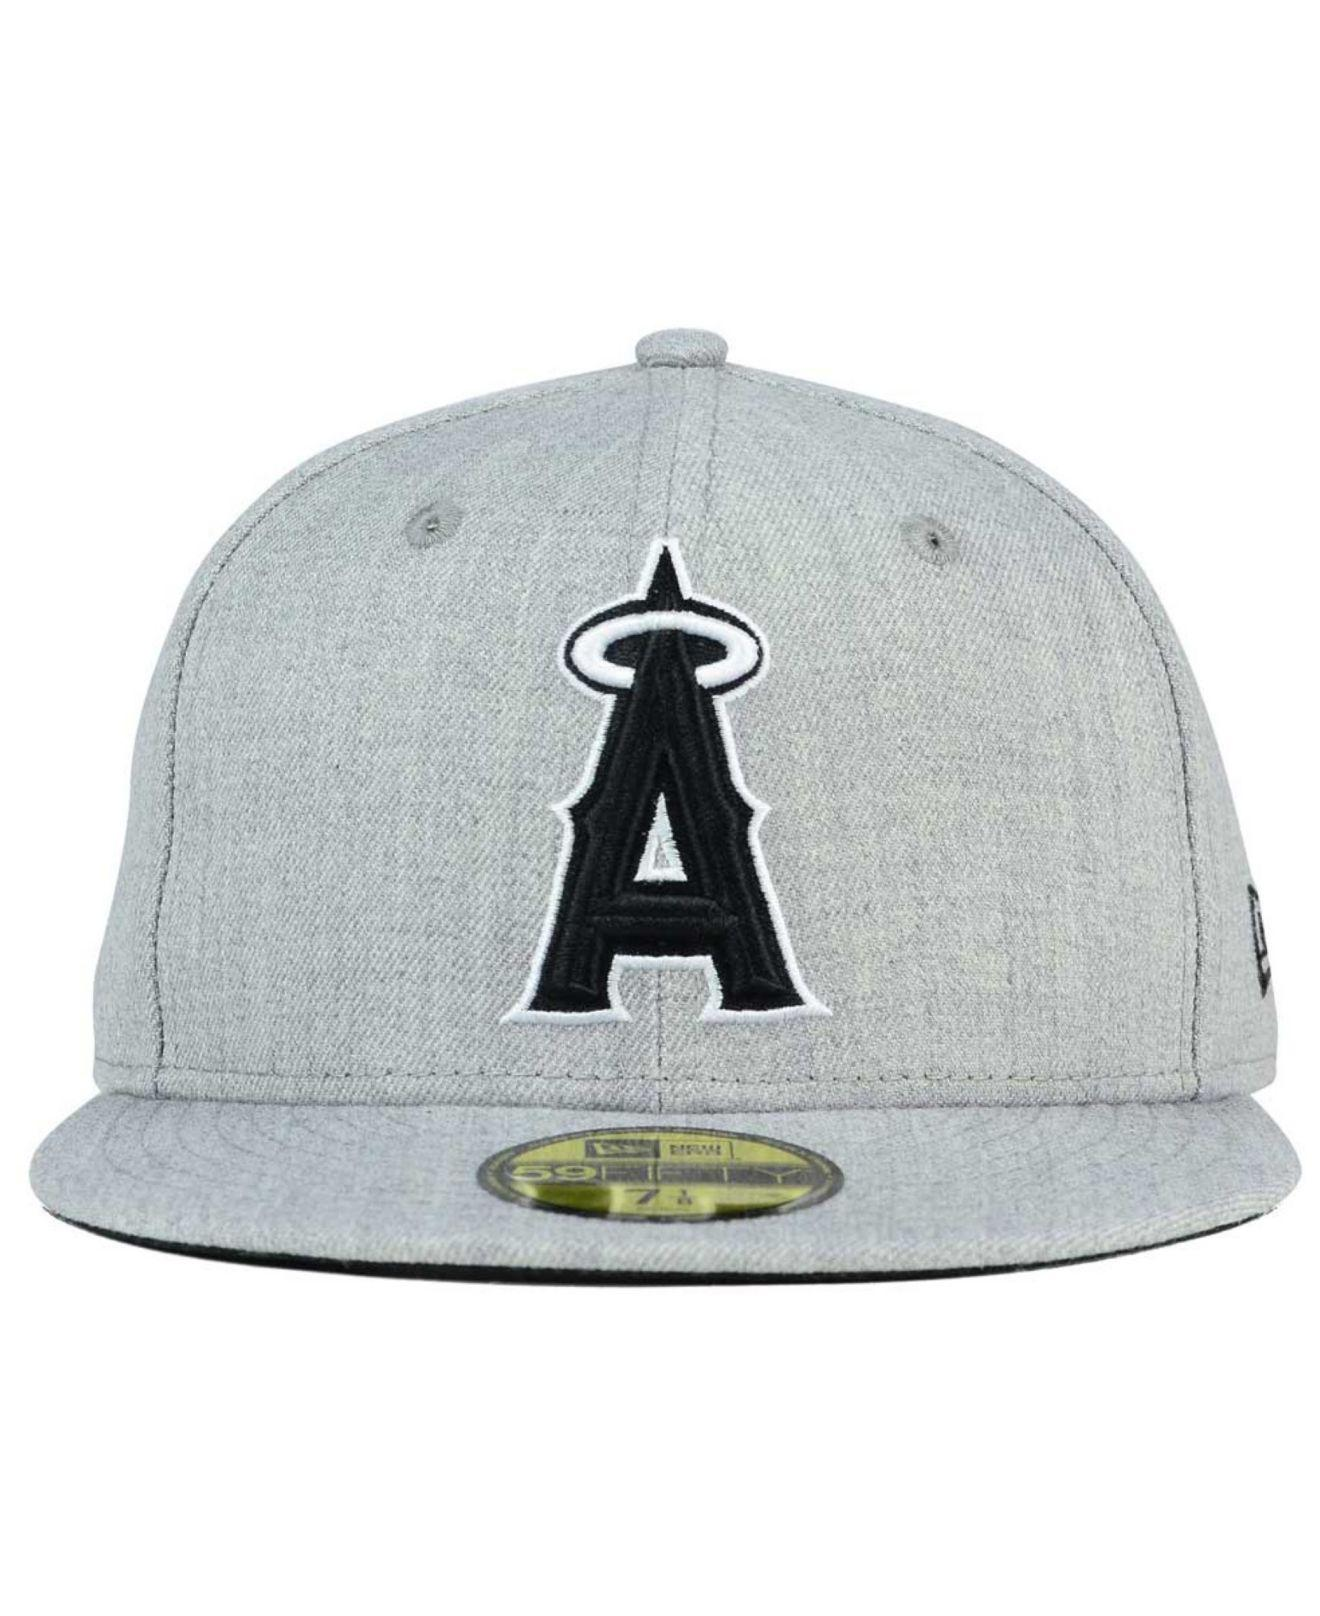 4a35f601a7e Lyst - KTZ Los Angeles Angels Of Anaheim Heather Black White 59fifty Cap in  Gray for Men